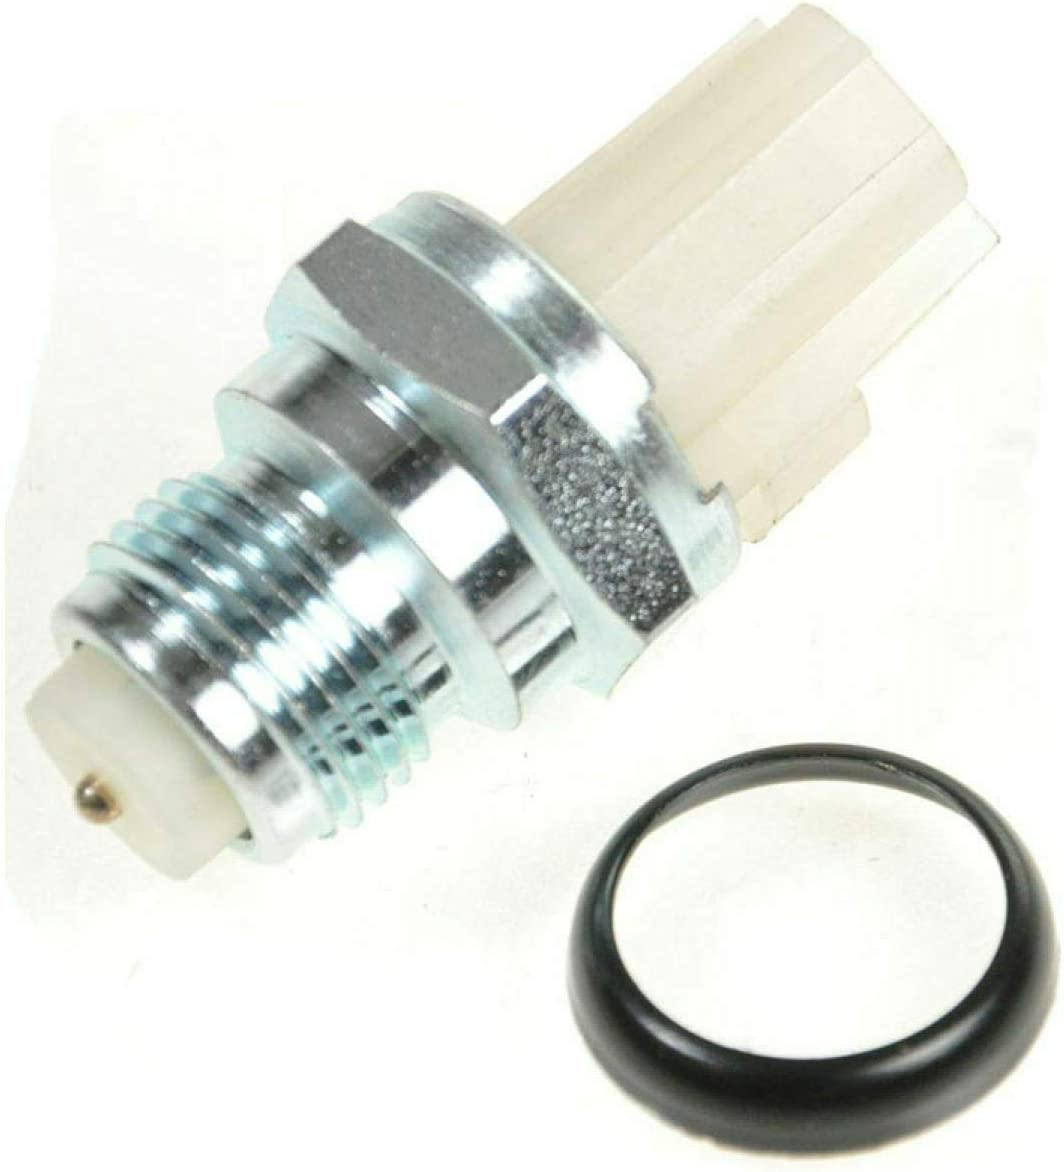 Sawyer Auto Neutral Safety Switch with Compatible Ranking TOP14 Van Dodge Ranking TOP12 Pick